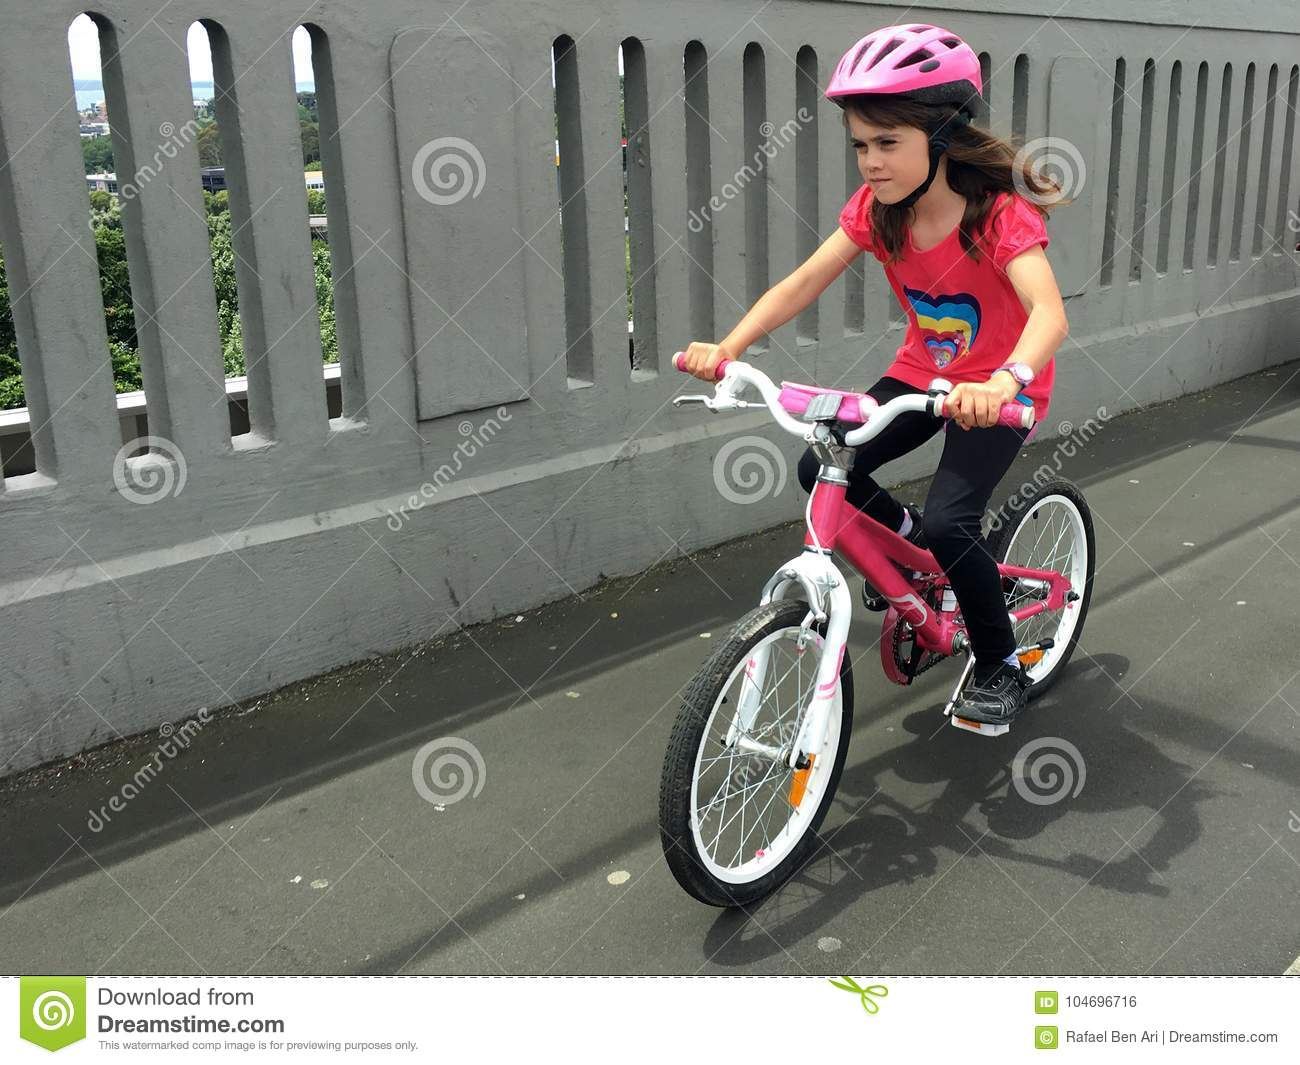 Determined young girl rides a bike